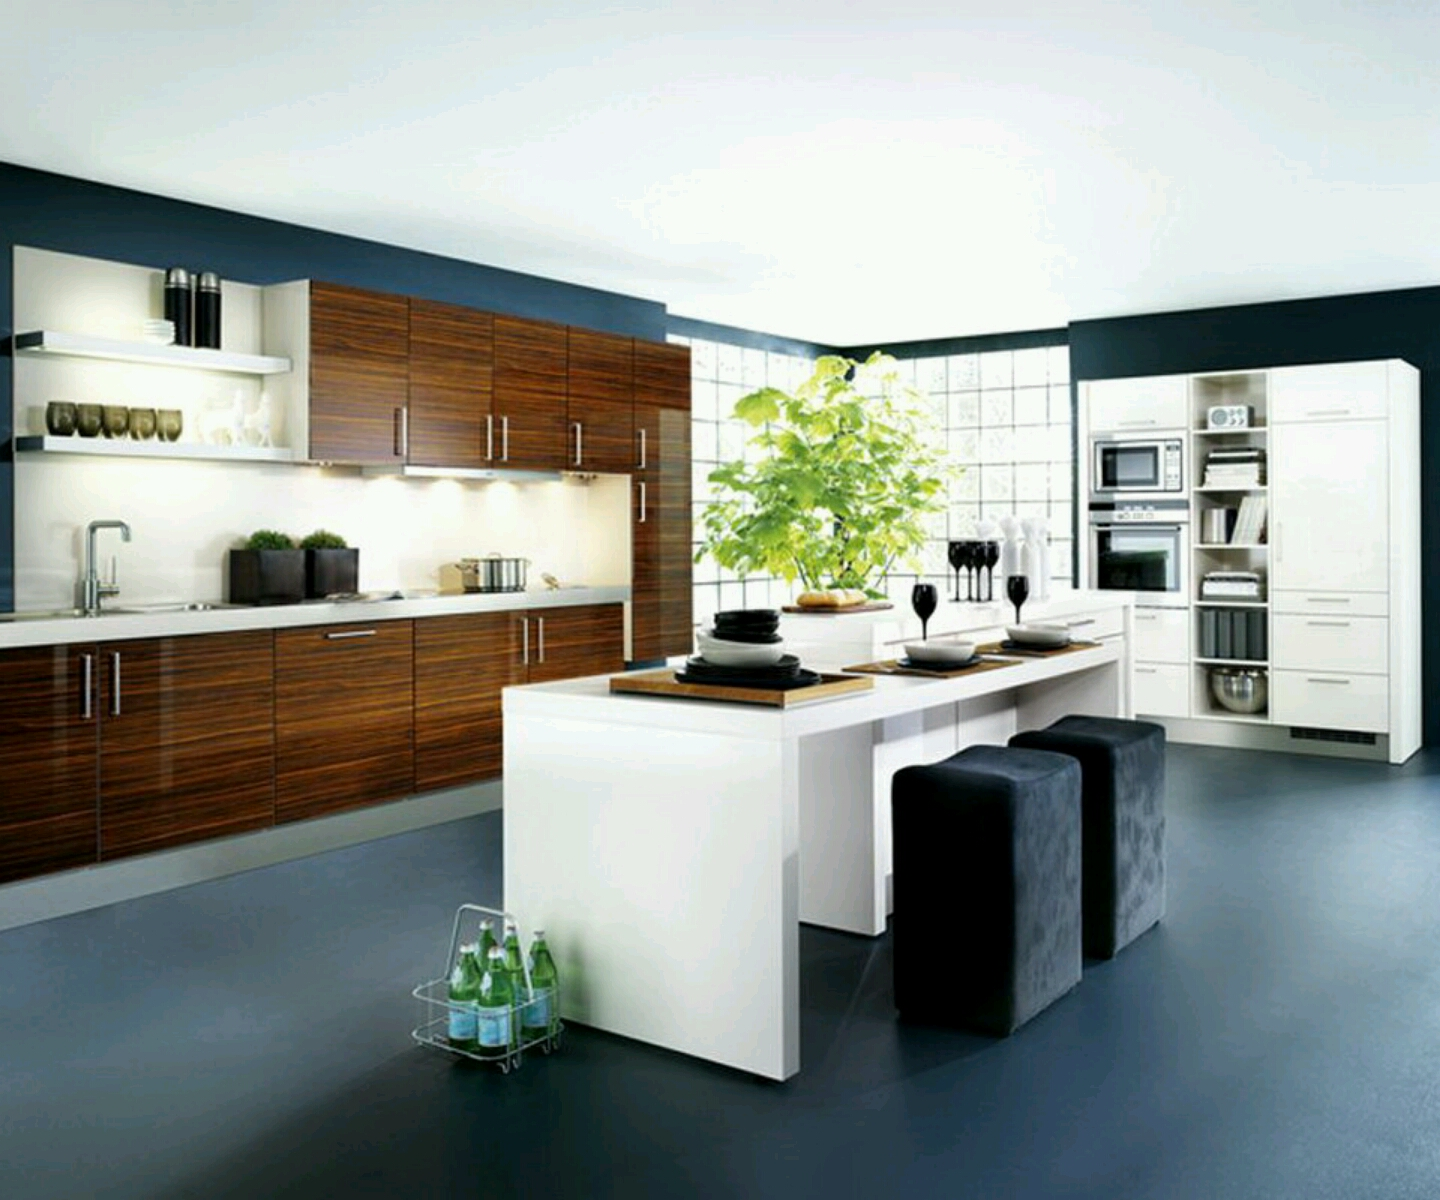 New home designs latest kitchen cabinets designs modern for Modern cupboard designs